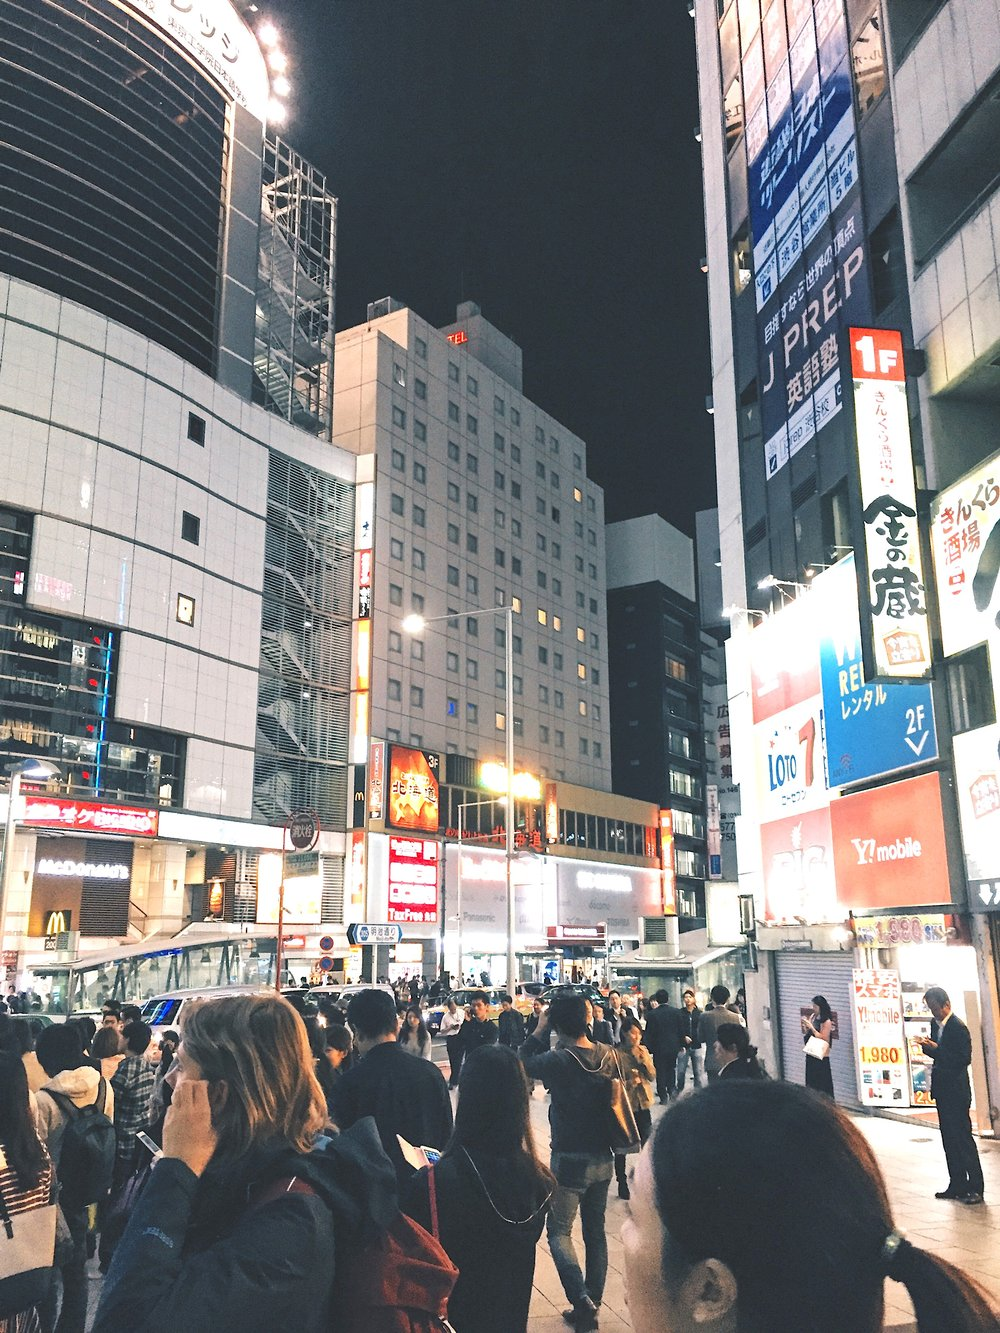 At night - Fashion & Lifestyle Spots in Tokyo, Japan - DROP